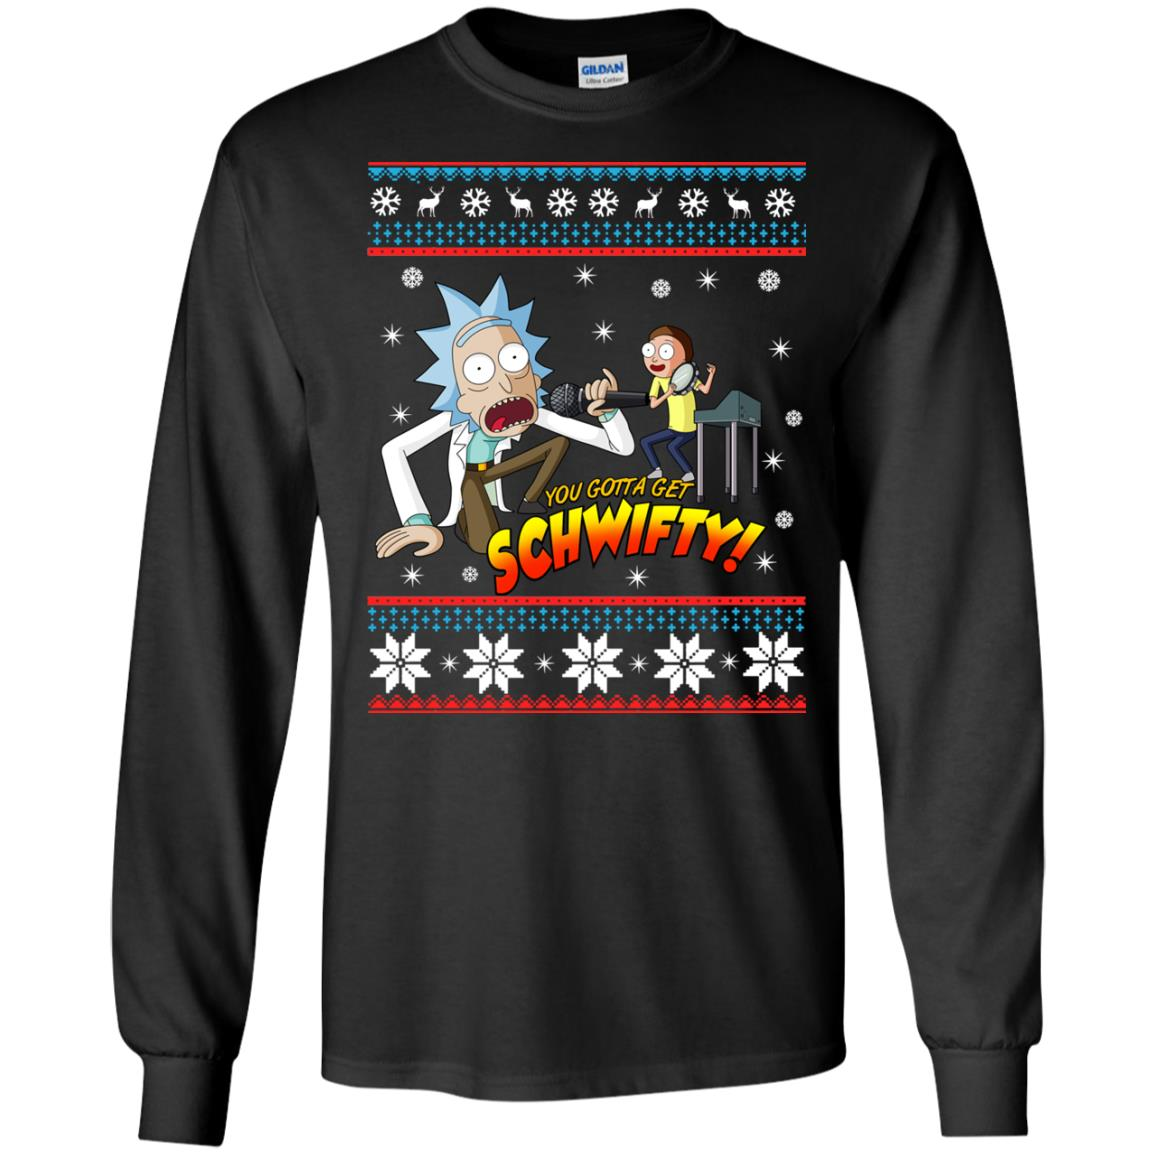 image 2411 - You gotta get Schwifty Ugly Christmas sweater, hoodie